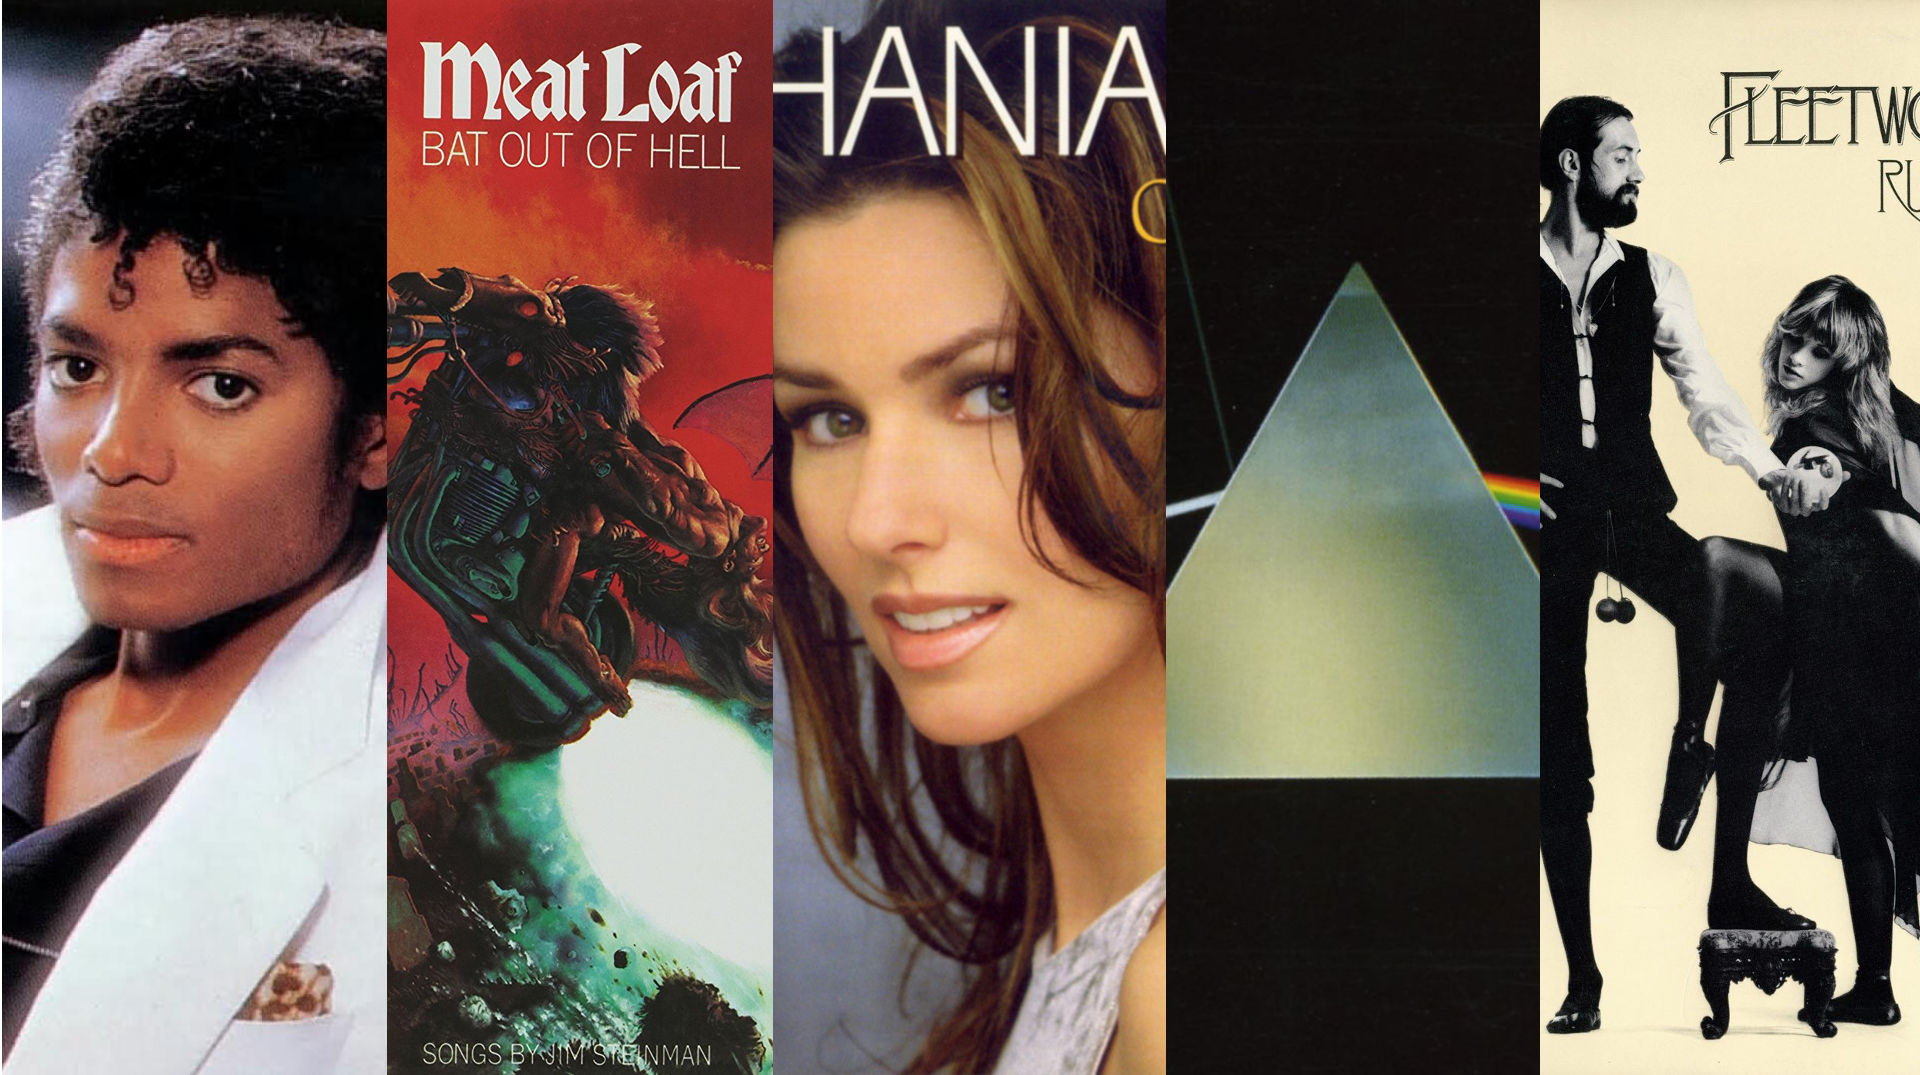 Five of the Best Country Music Albums of the 21st Century